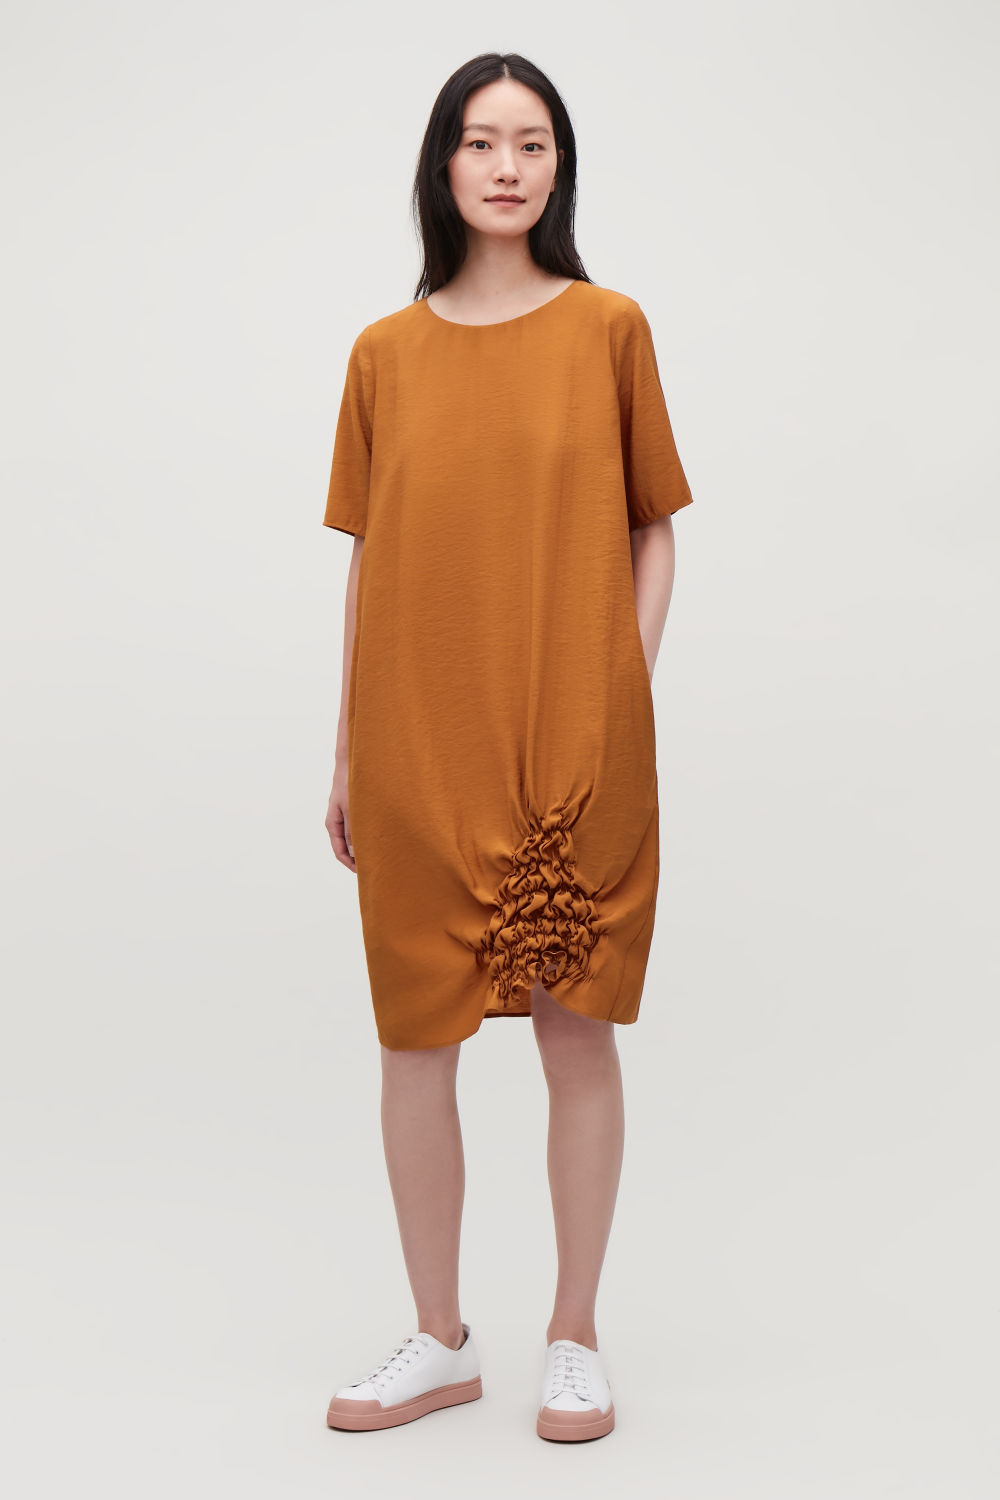 COS DRESS WITH GATHERED HEM,Terracotta